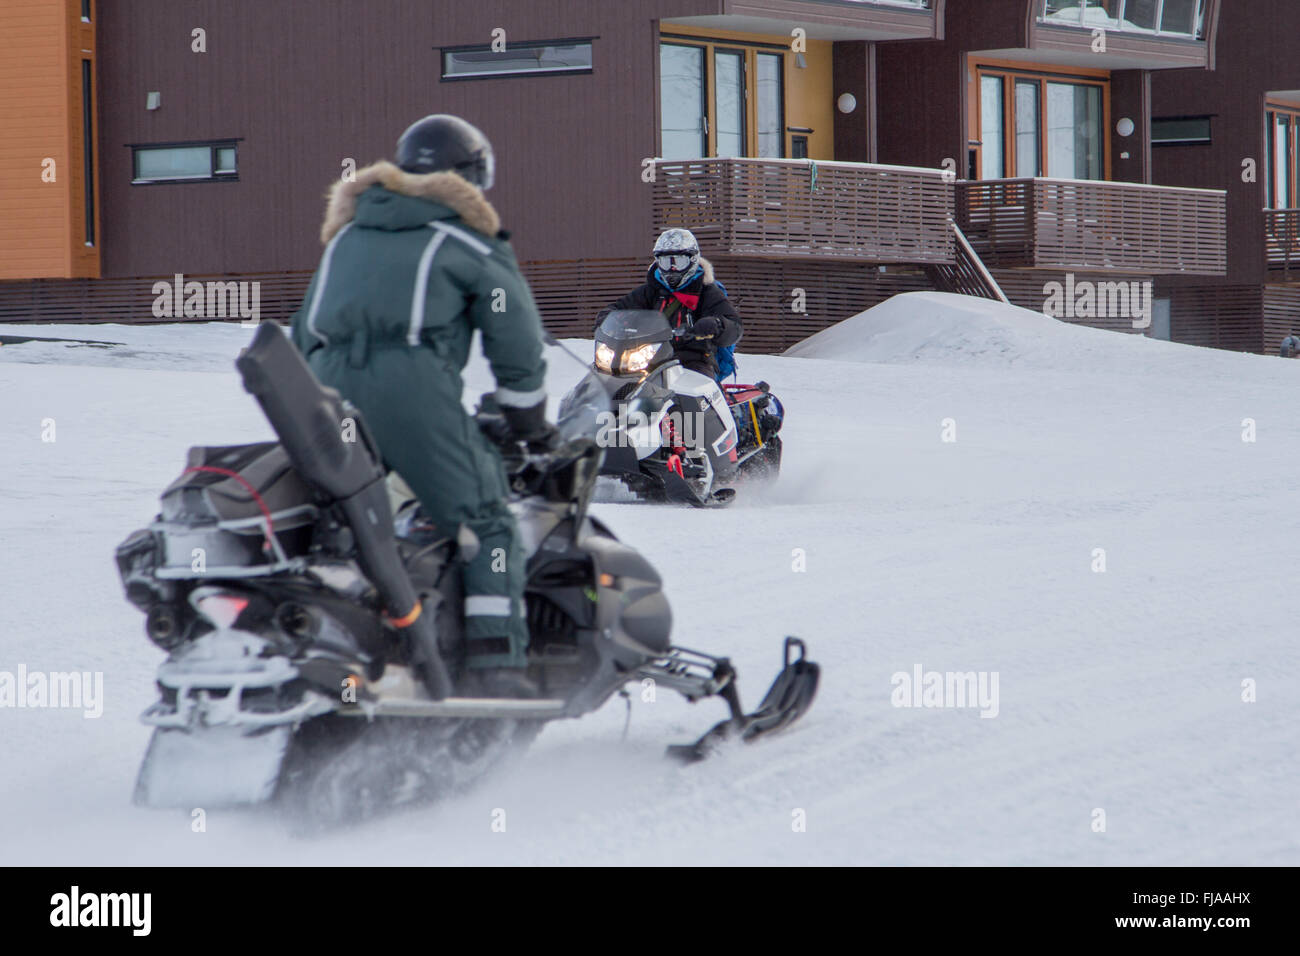 Snowmobile is the best transportation  in Longyearbyen, Spitsbergen (Svalbard). Norway - Stock Image